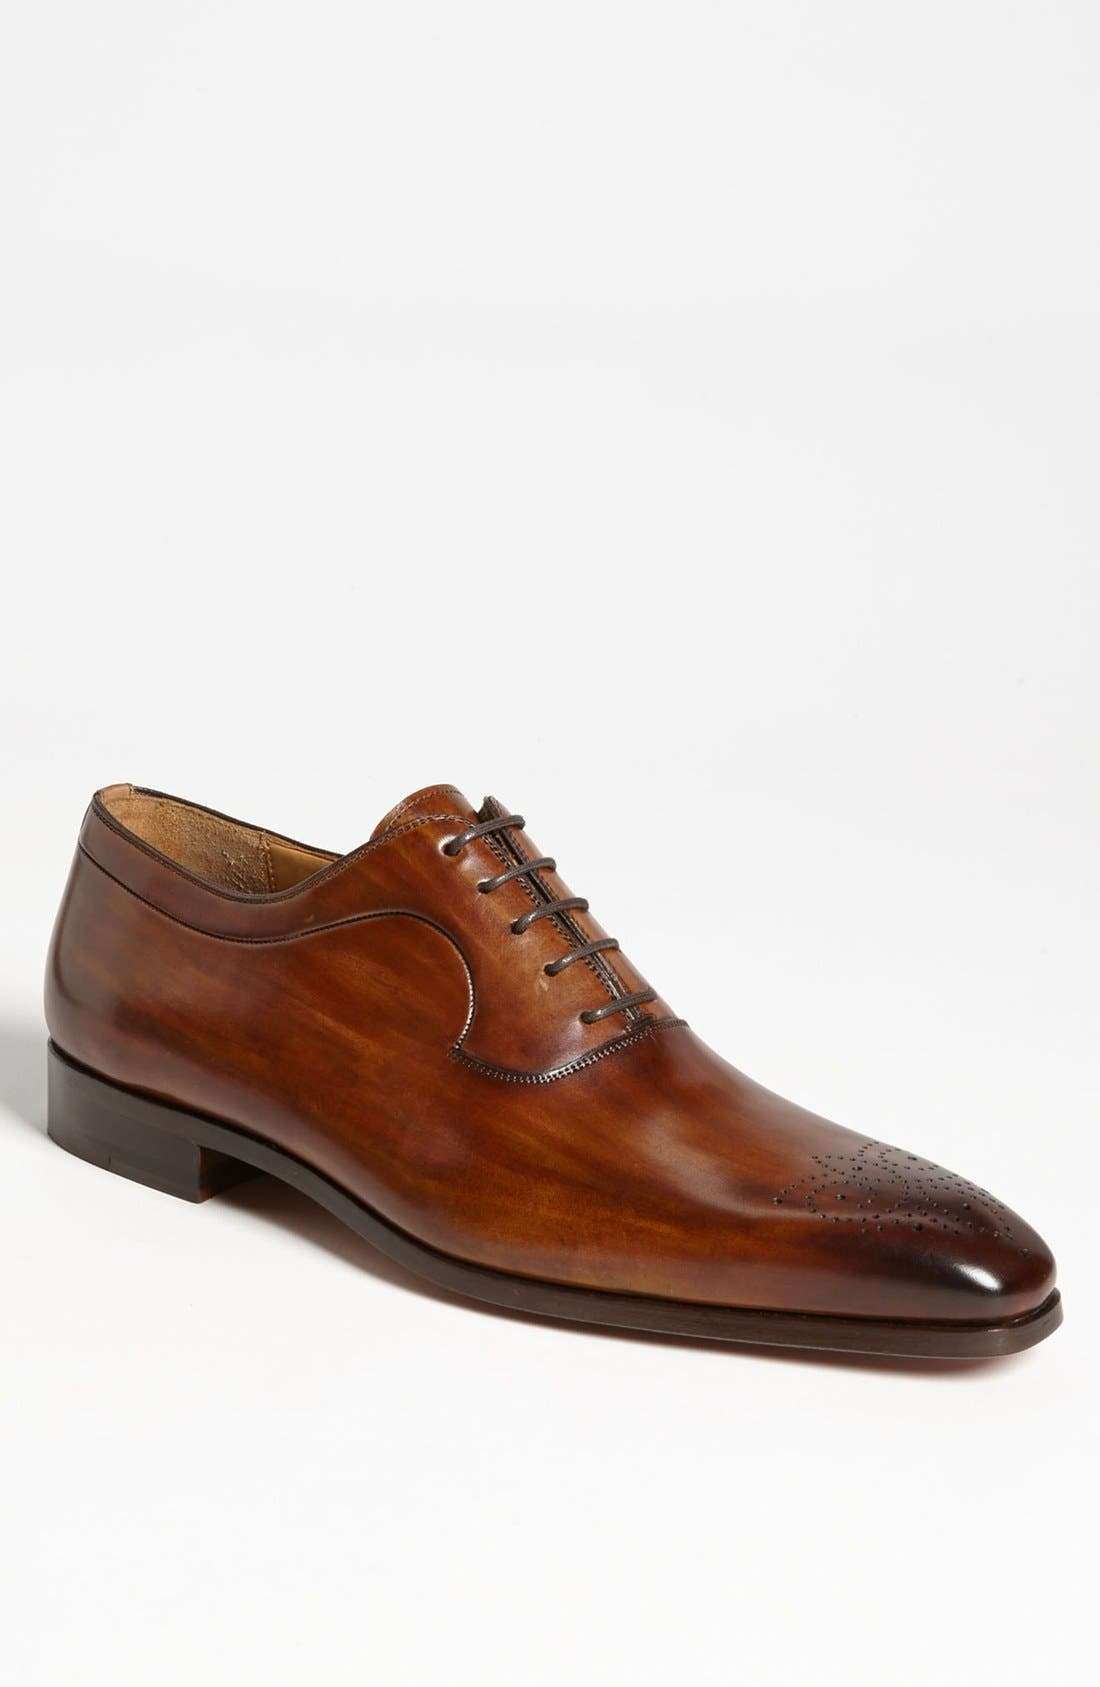 Alternate Image 1 Selected - Magnanni 'Astil' Oxford